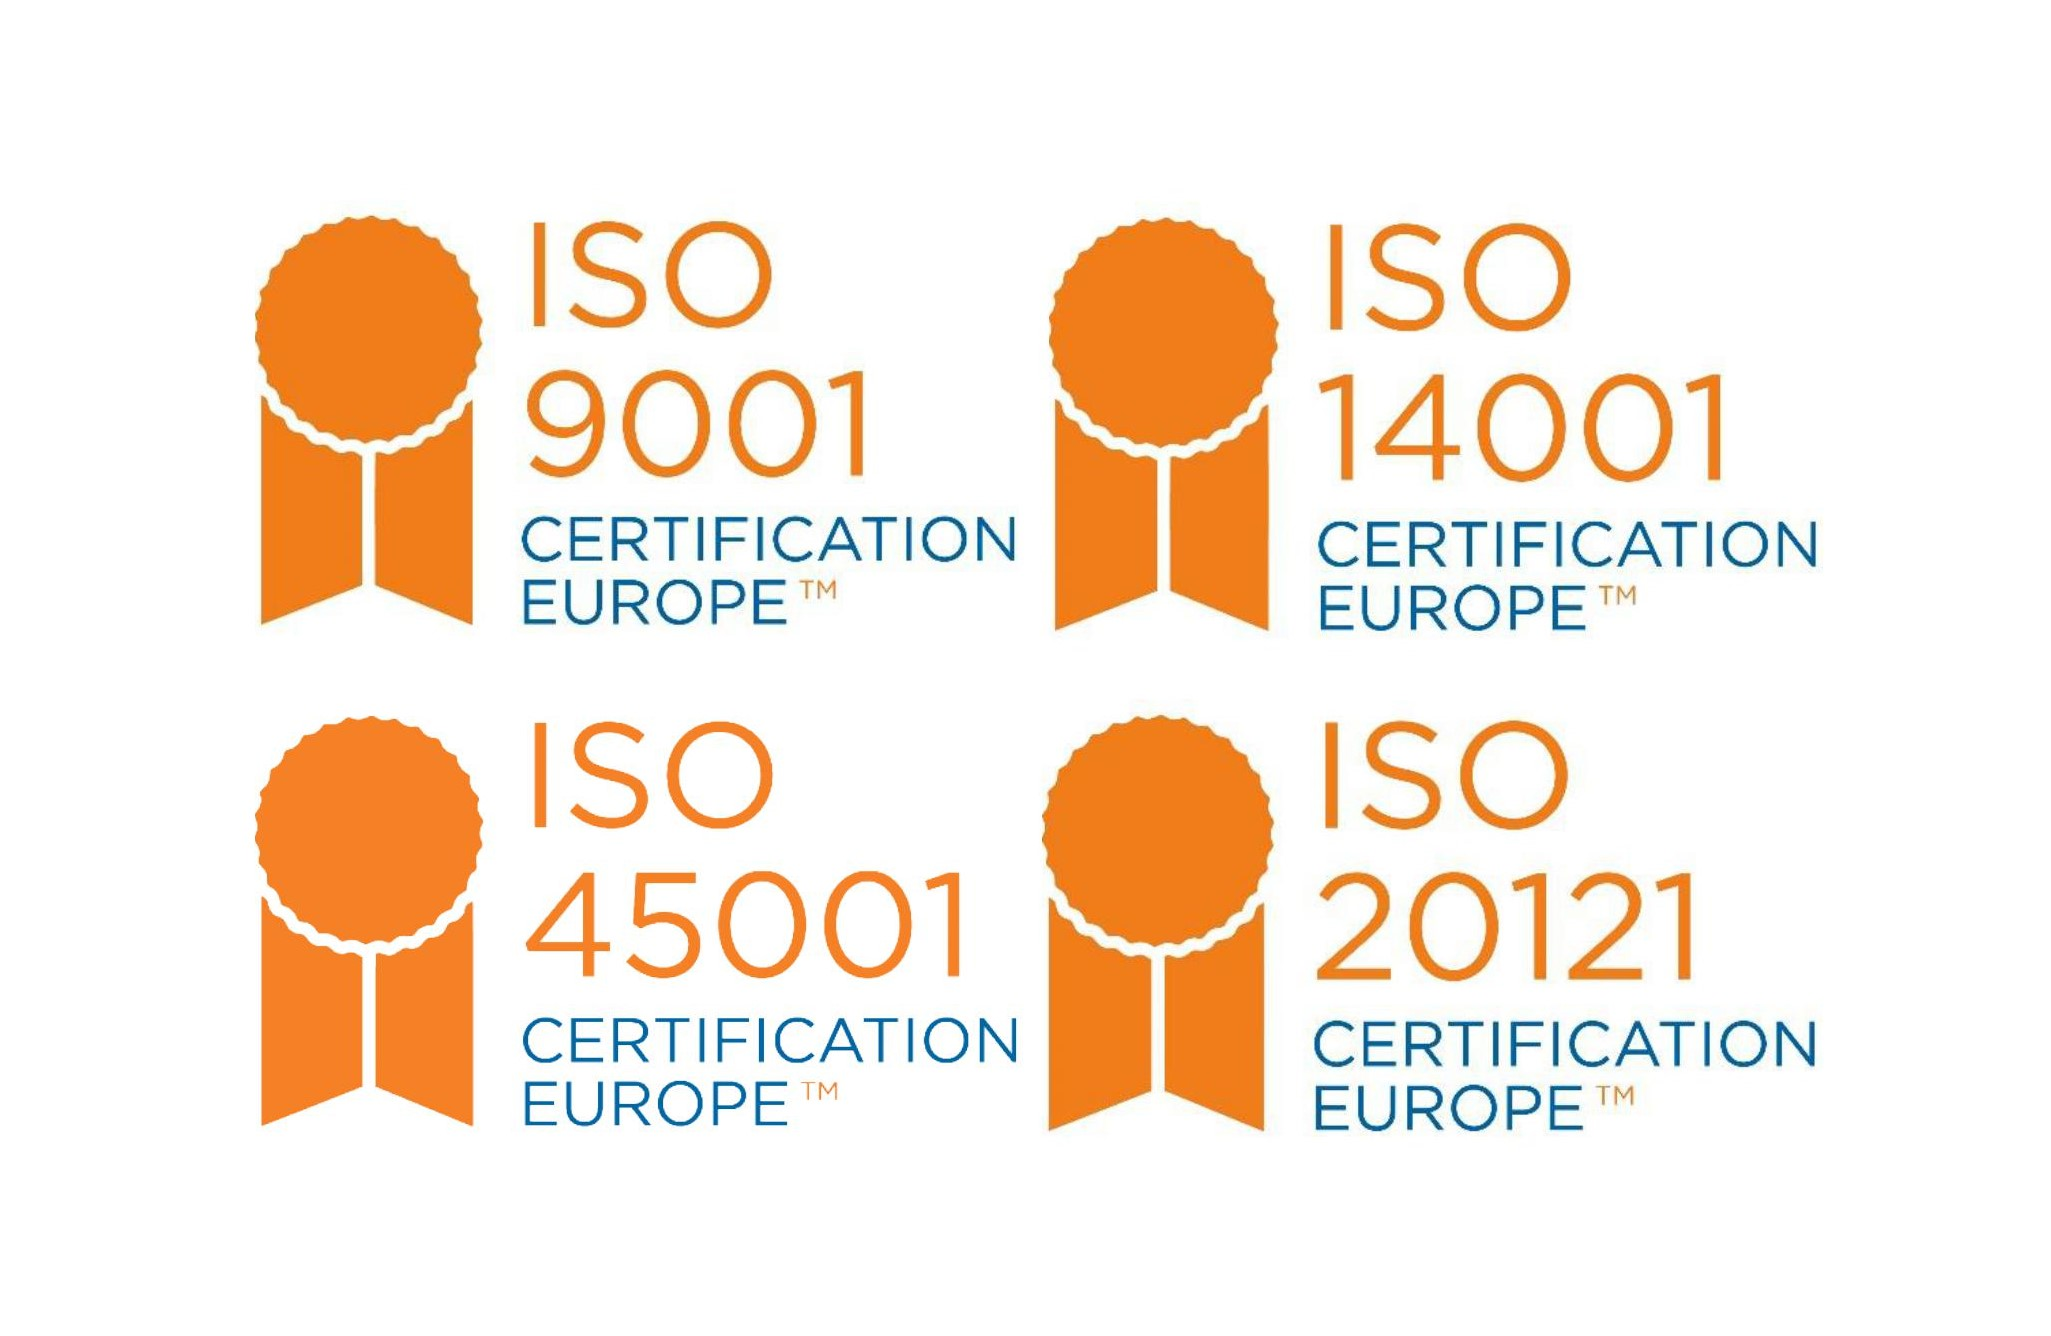 ISO Certification Europe 9001, 14001, 18001, 20121